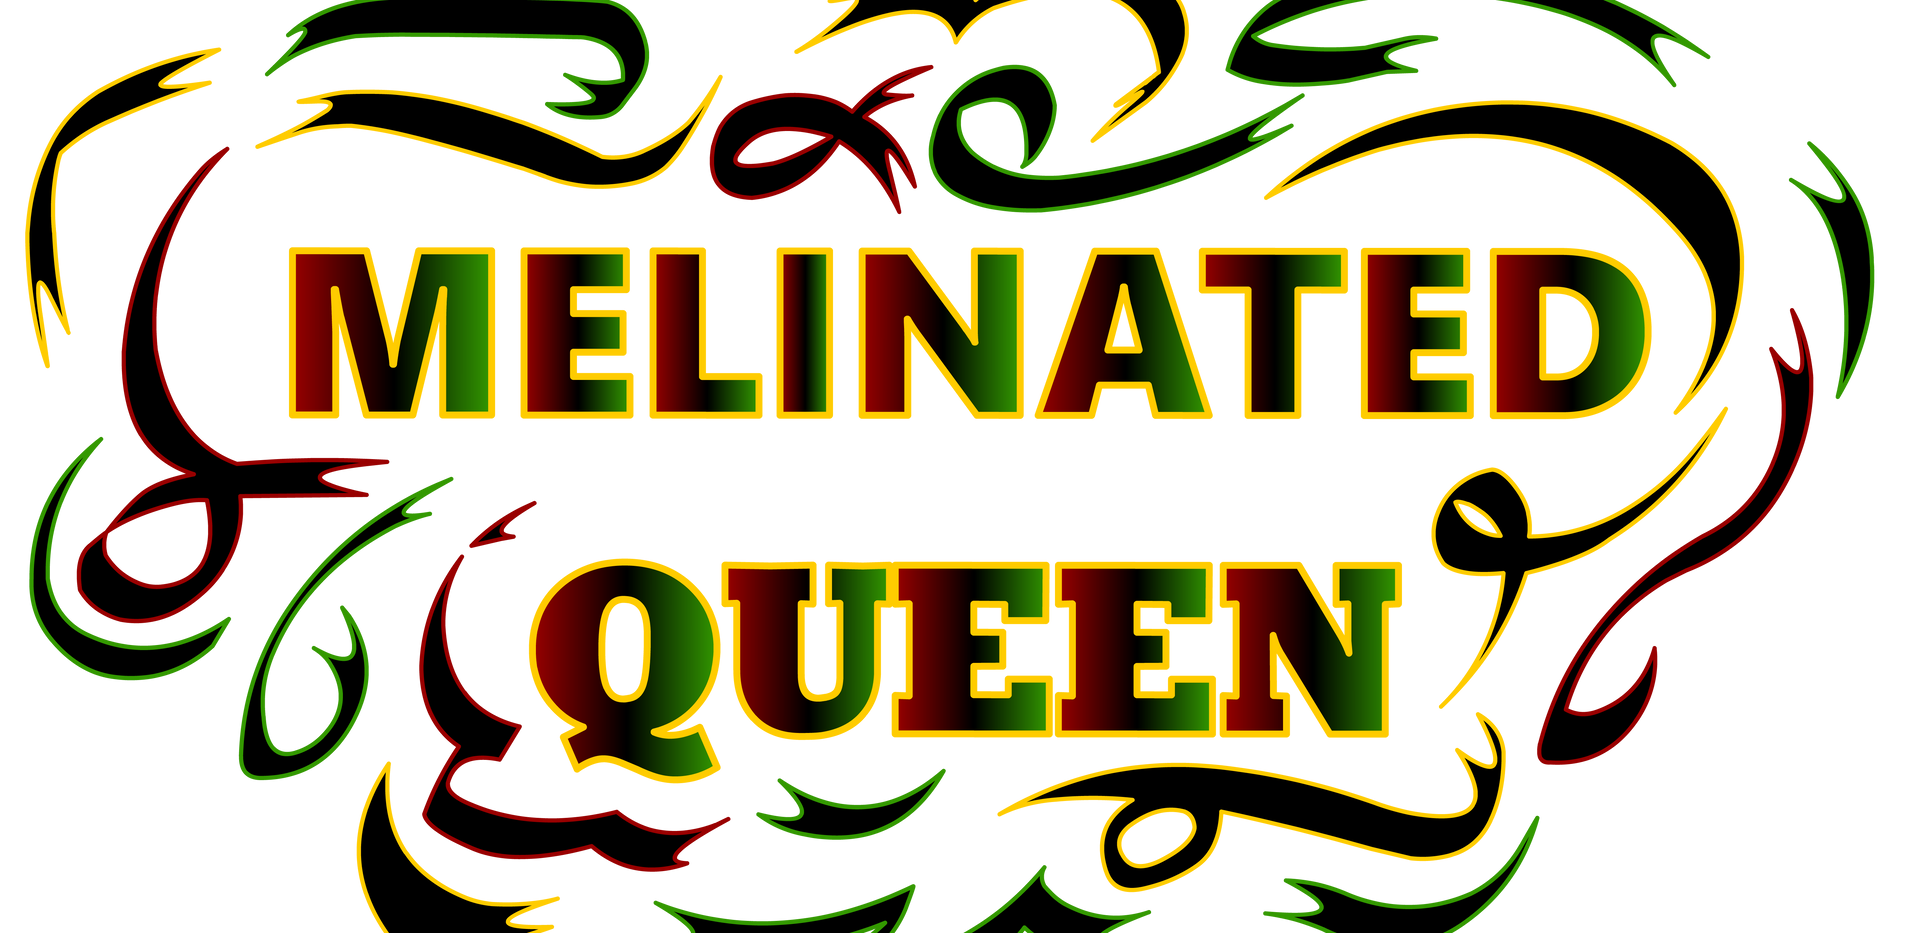 MELINATED QUEEN.png